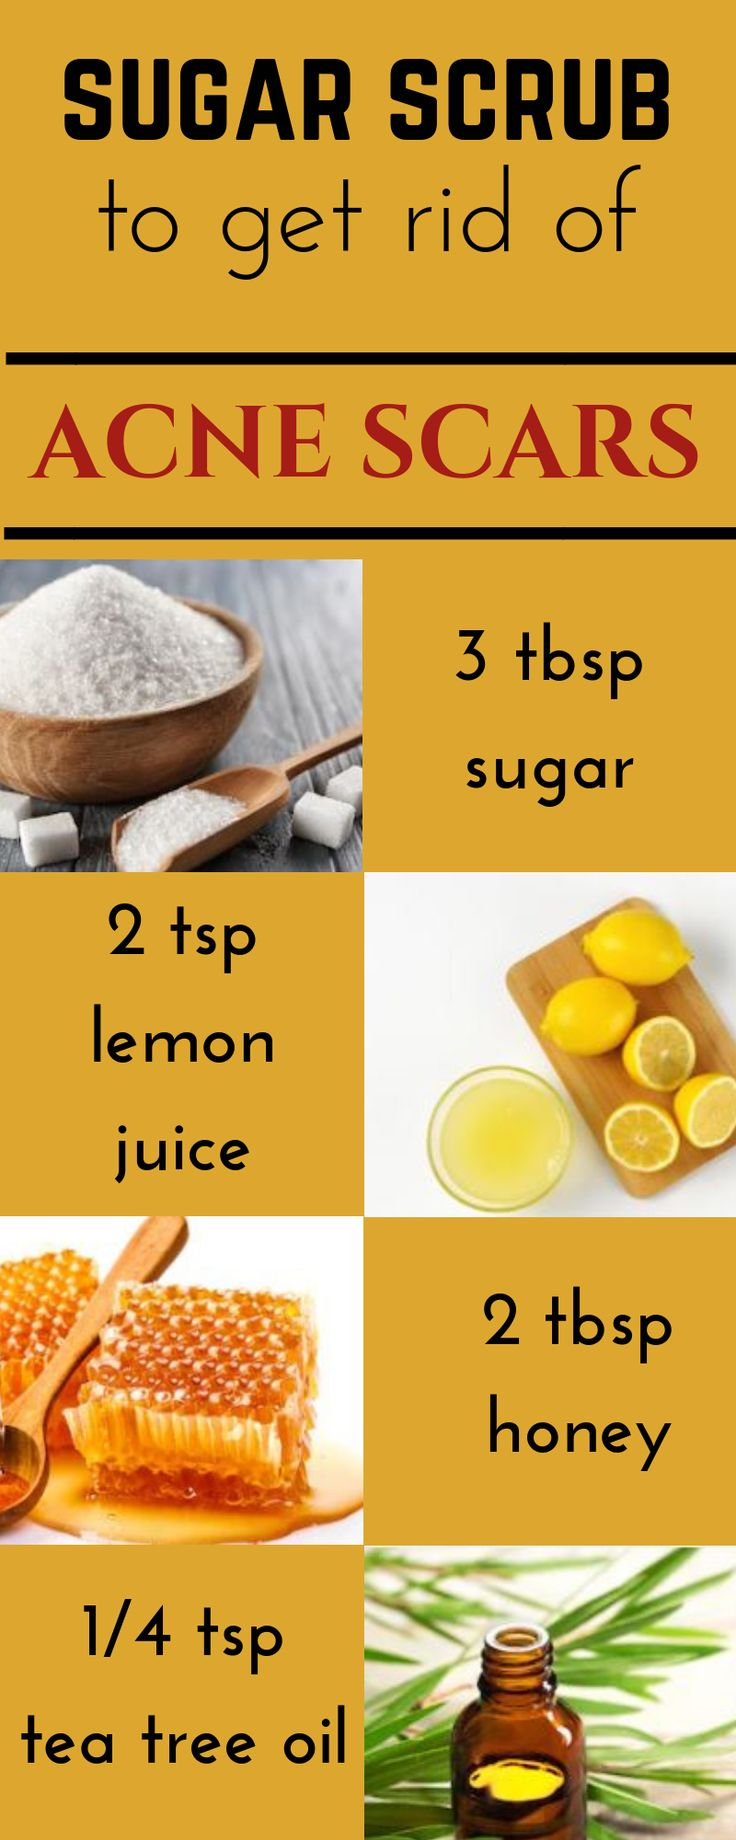 Amazing DIY sugar scrub to get rid of acne scars at homeCathy Beauty Tips Weight Loss